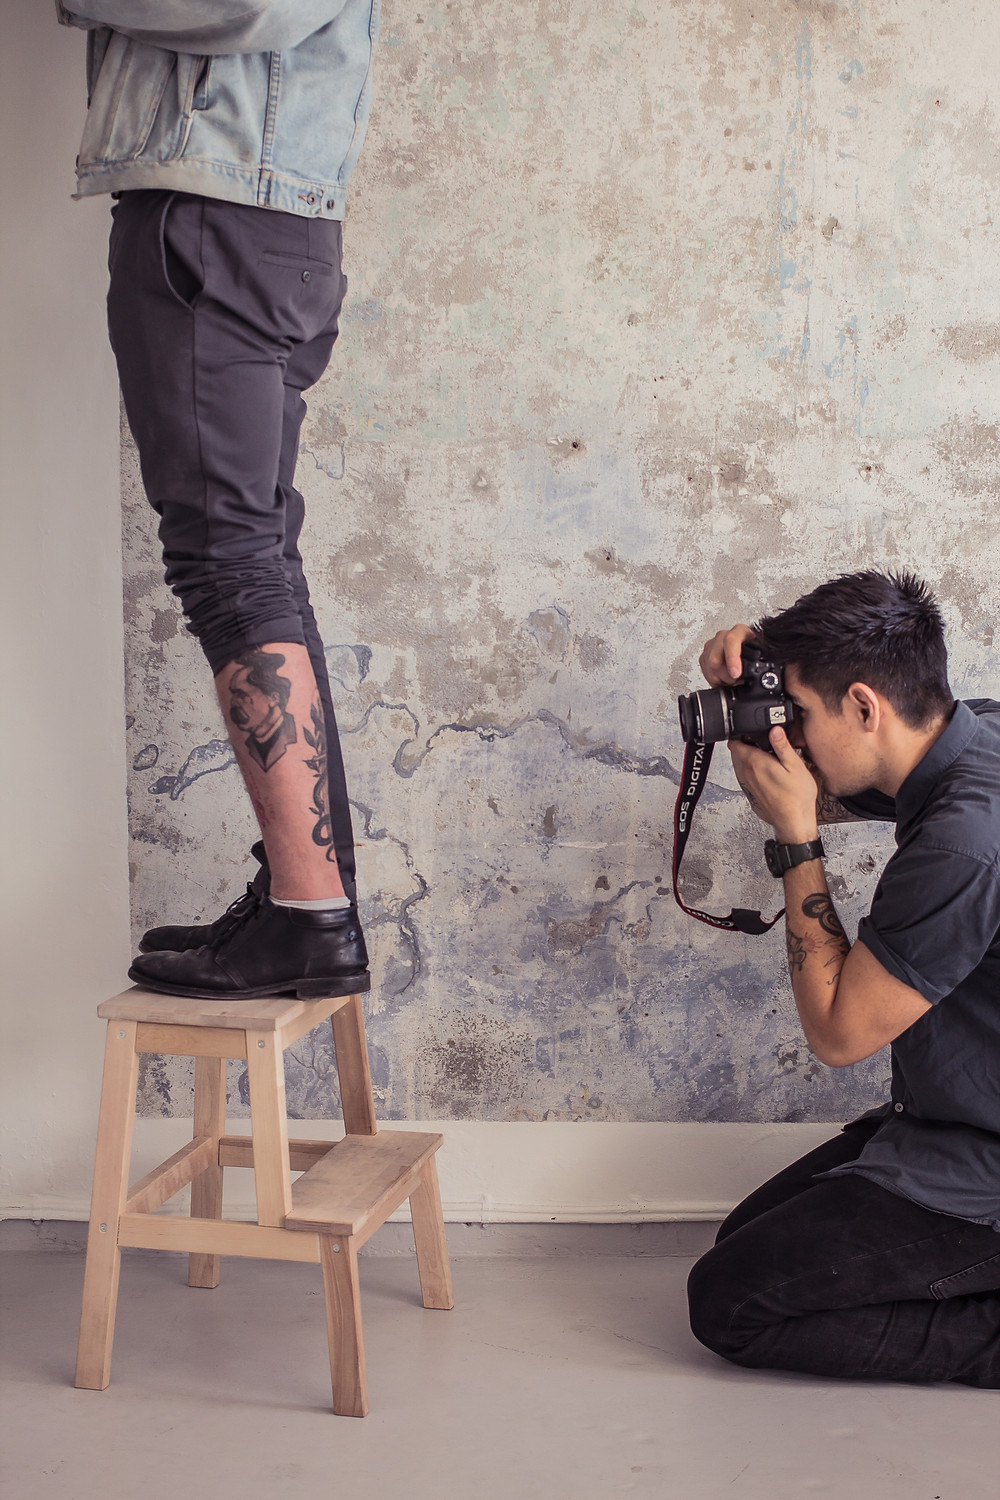 Mike Ho taking a picture of a new tattoo in the new studio - Handshake Studio